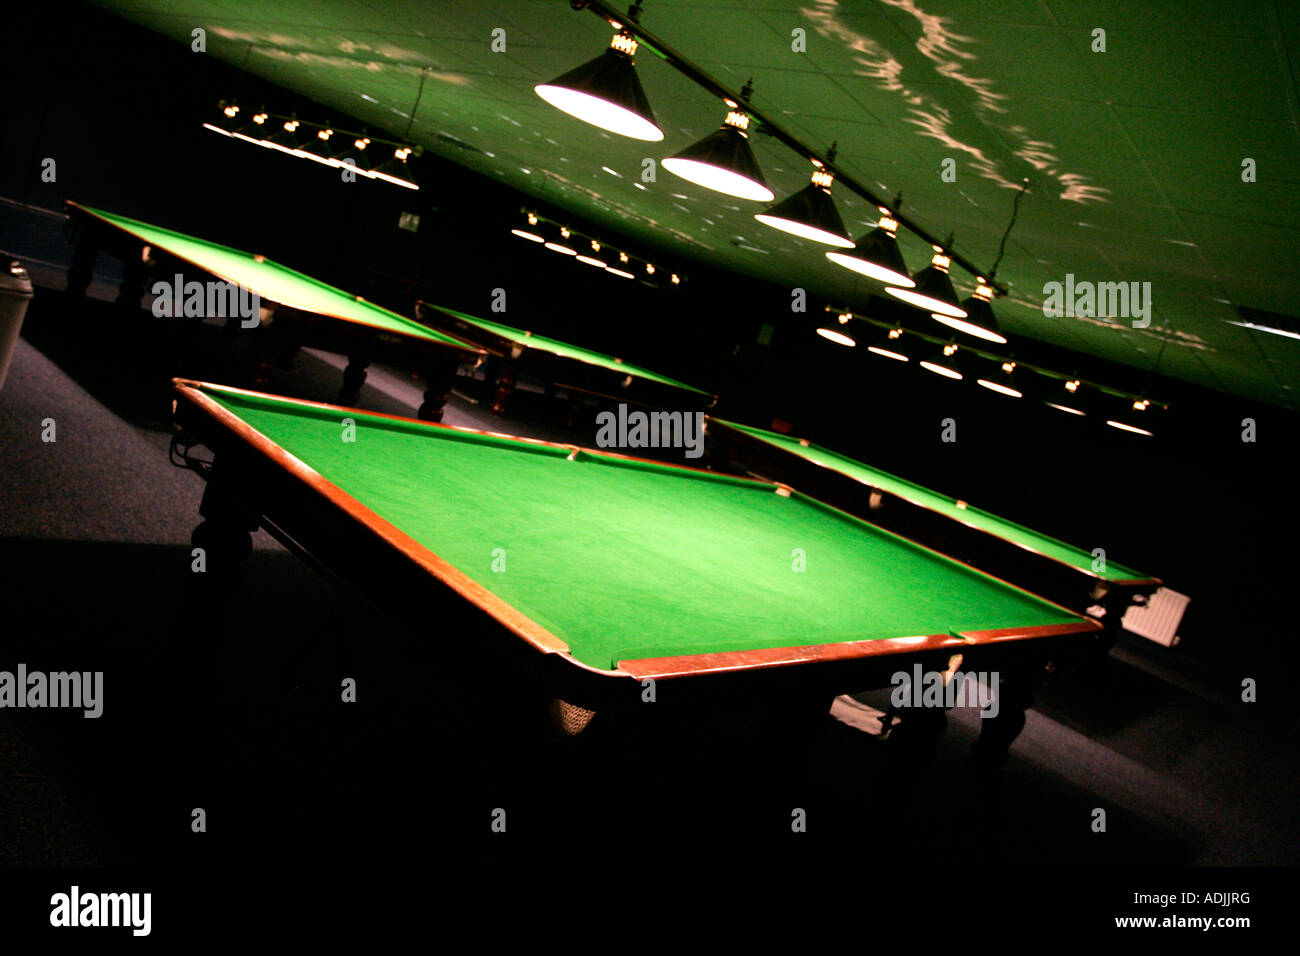 Snooker Hall Stock Photos Amp Snooker Hall Stock Images Alamy